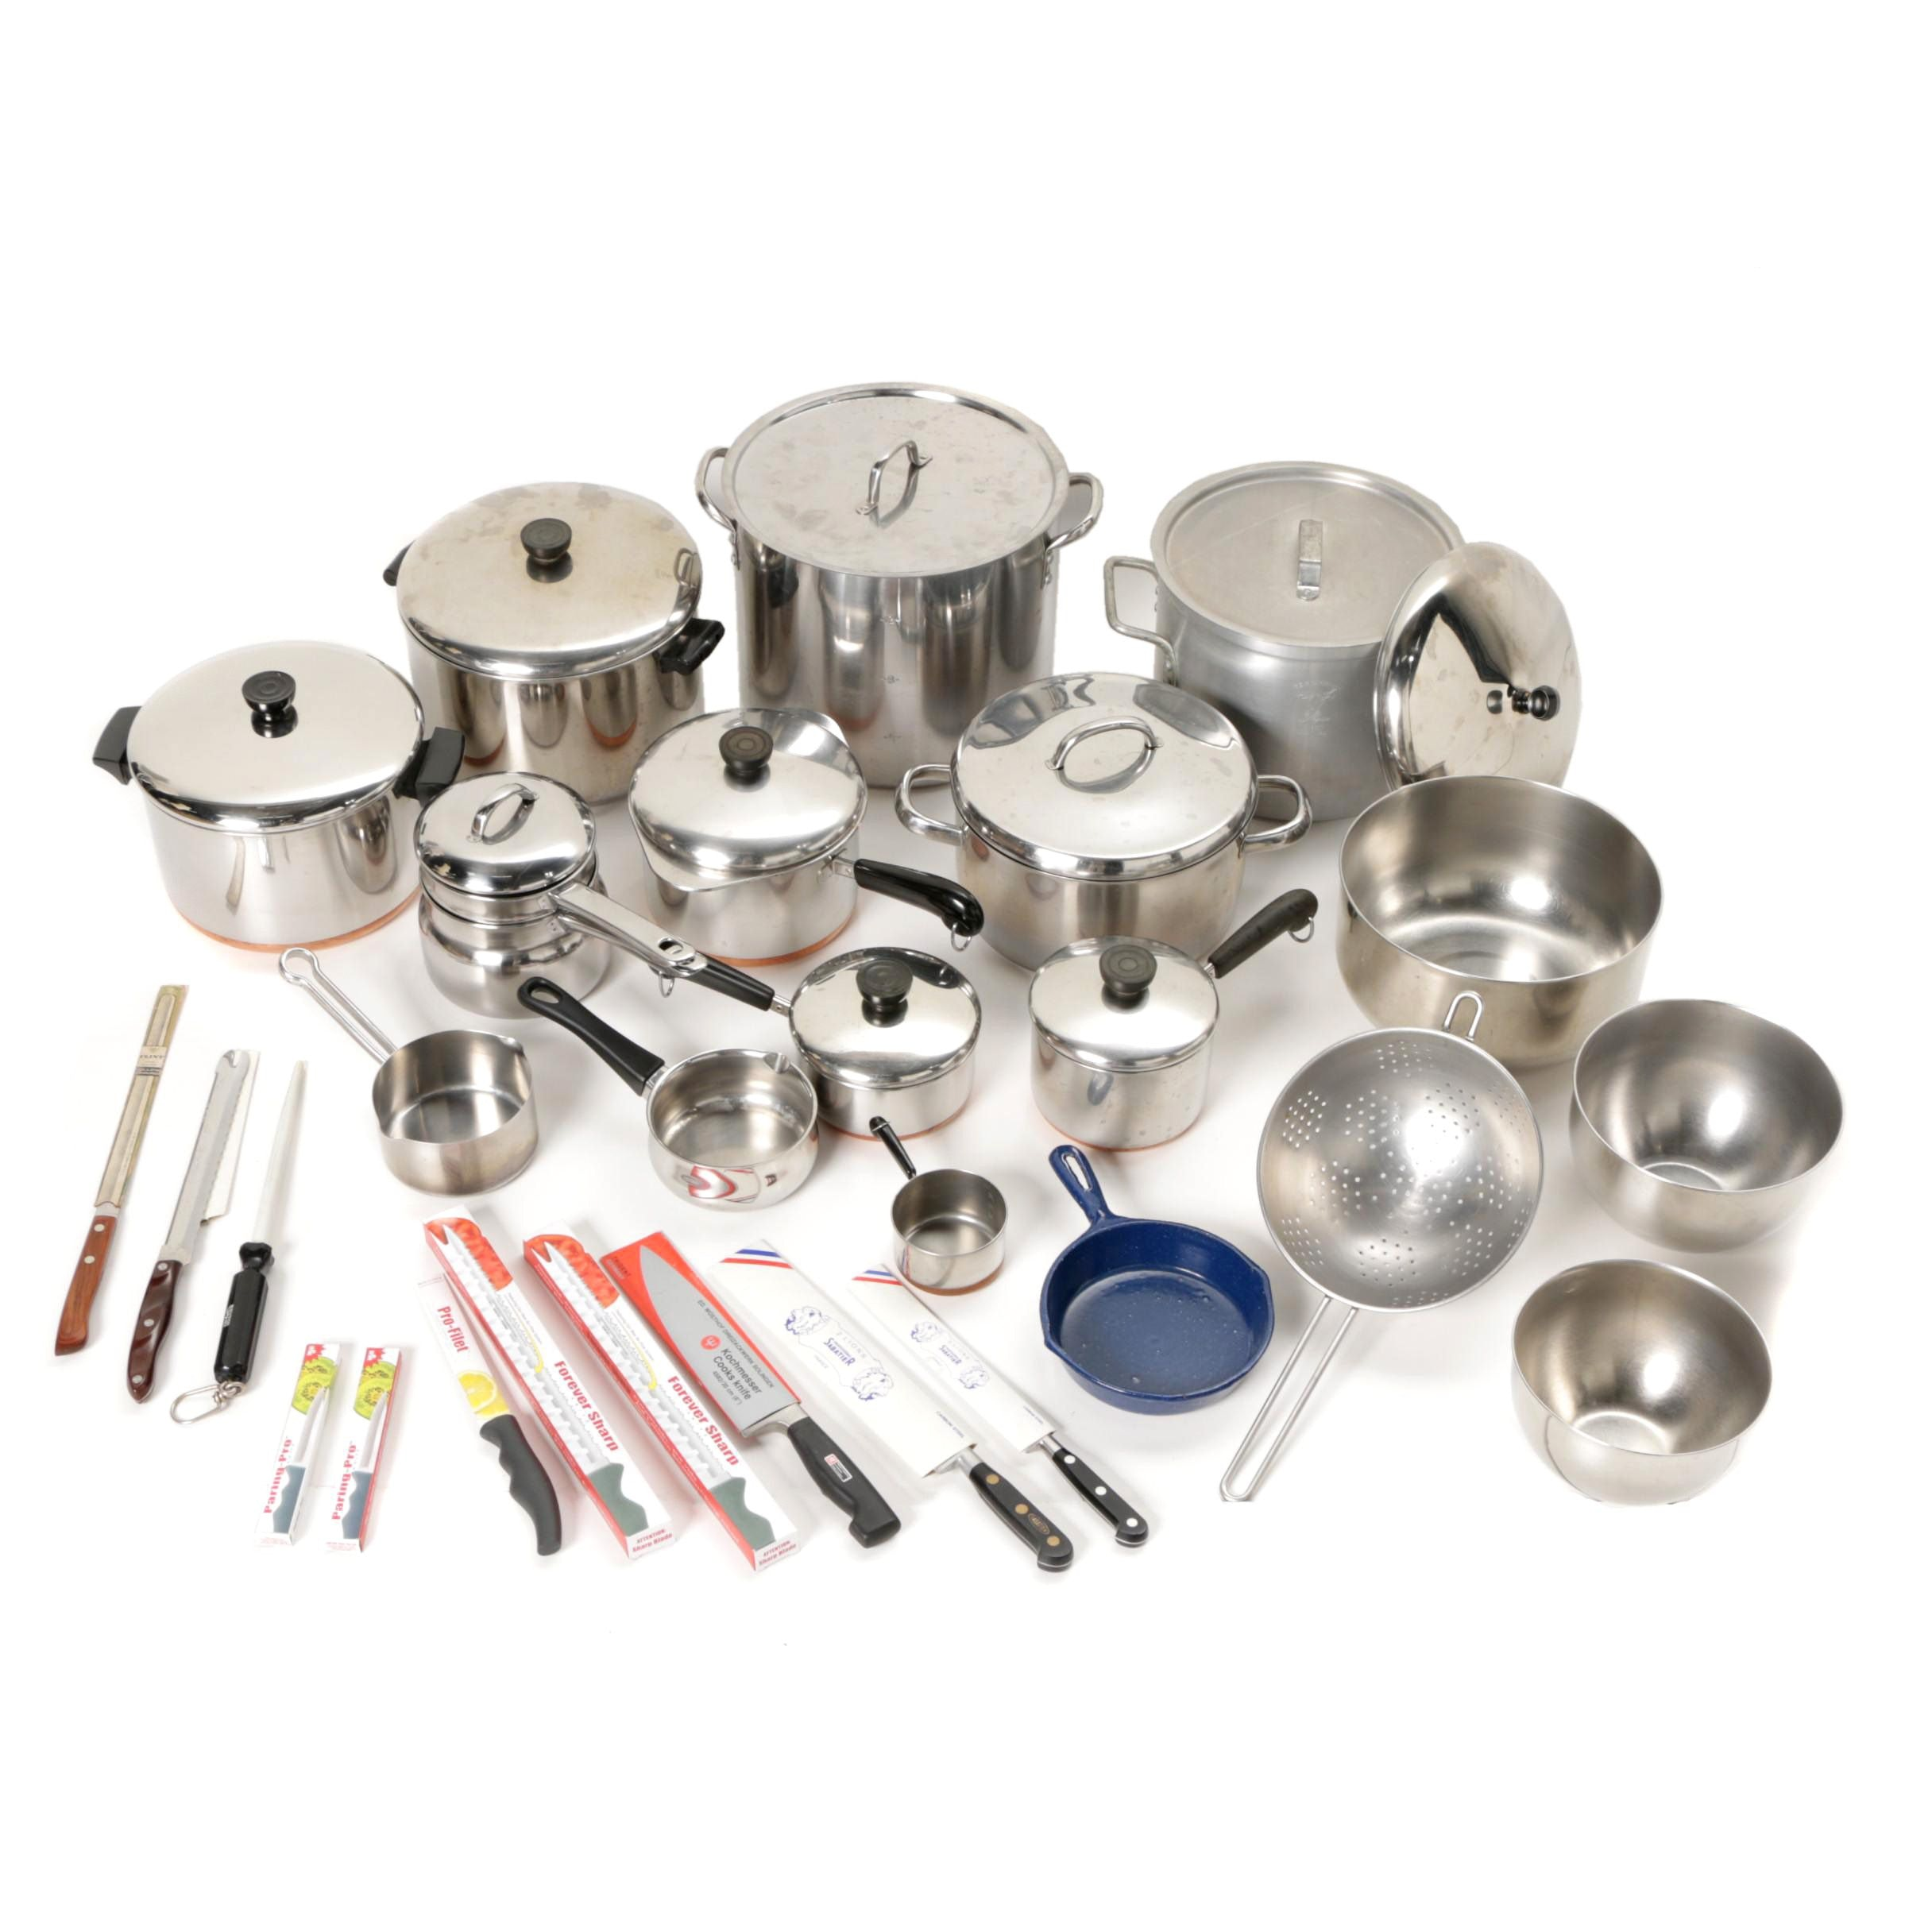 Stainless Steel Cookware and Cutlery